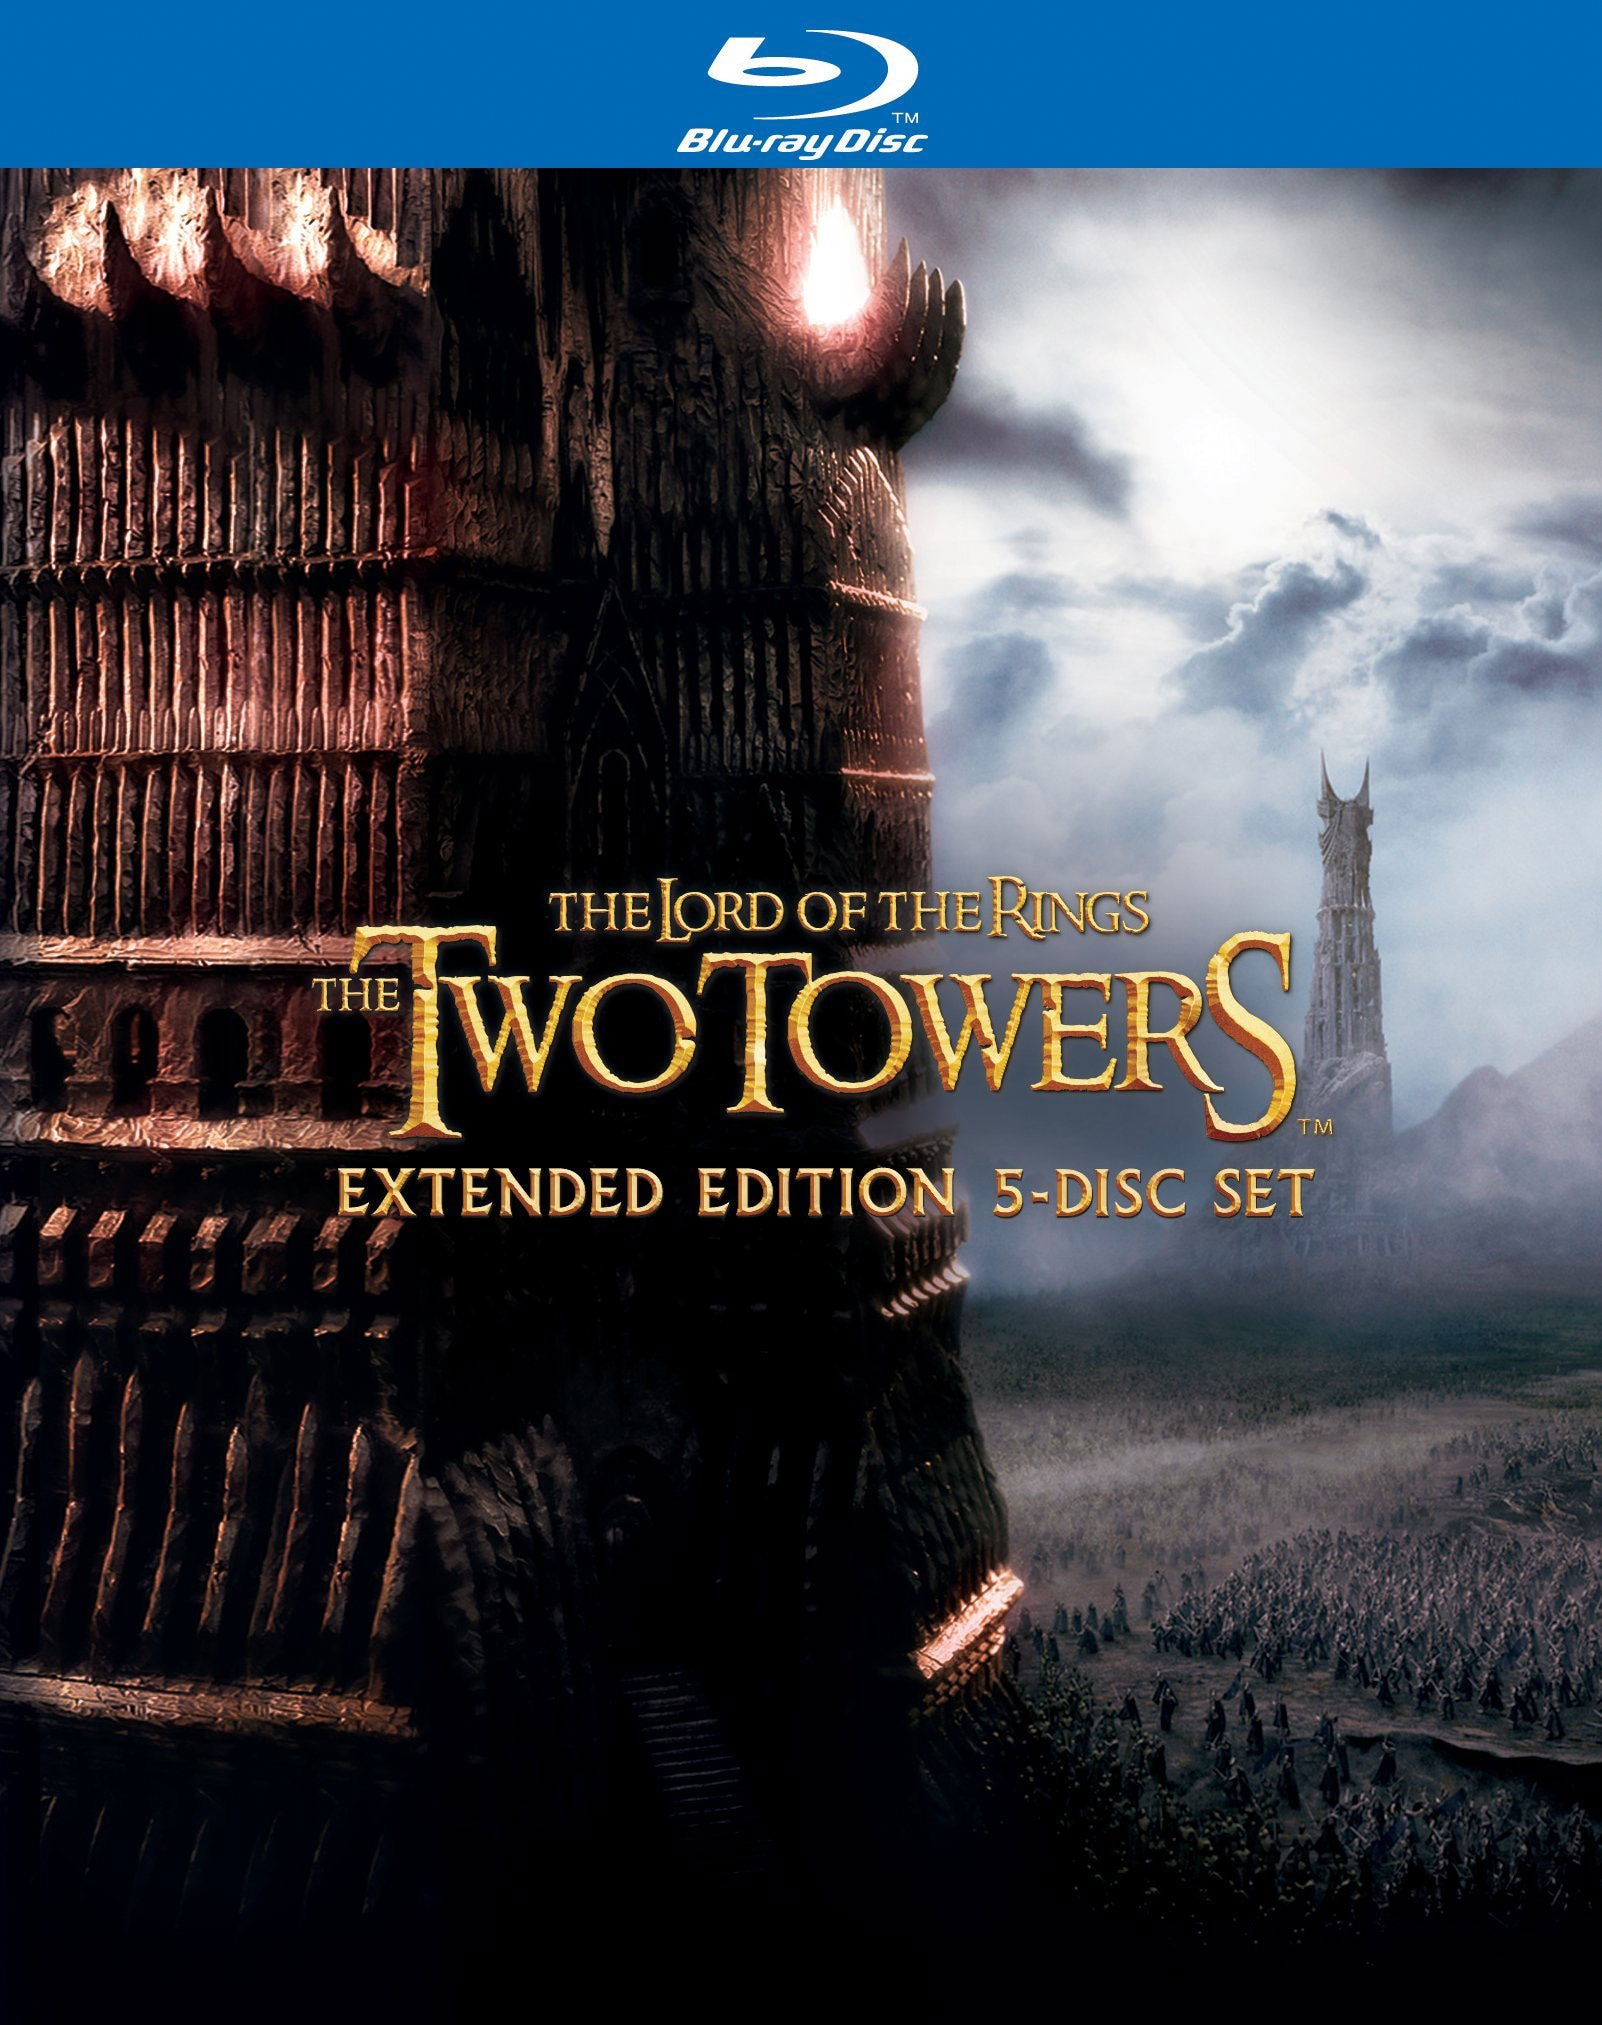 The Lord of the Rings: The Two Towers (Blu-ray Disc)